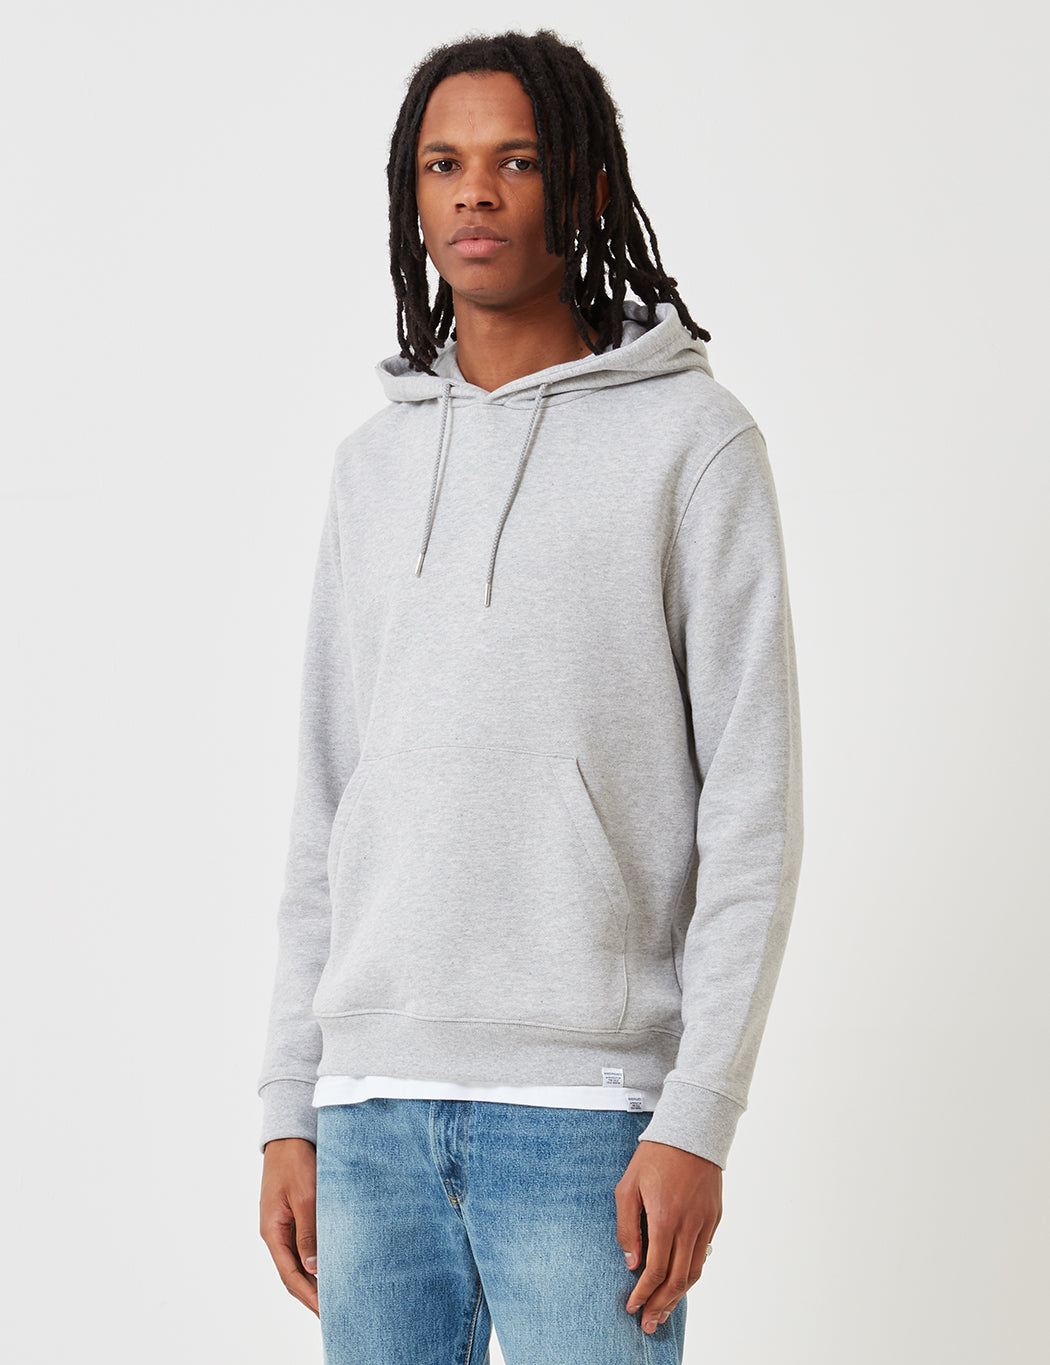 Norse Projects Vagn Classic Hooded Sweatshirt - Grey | URBAN EXCESS.